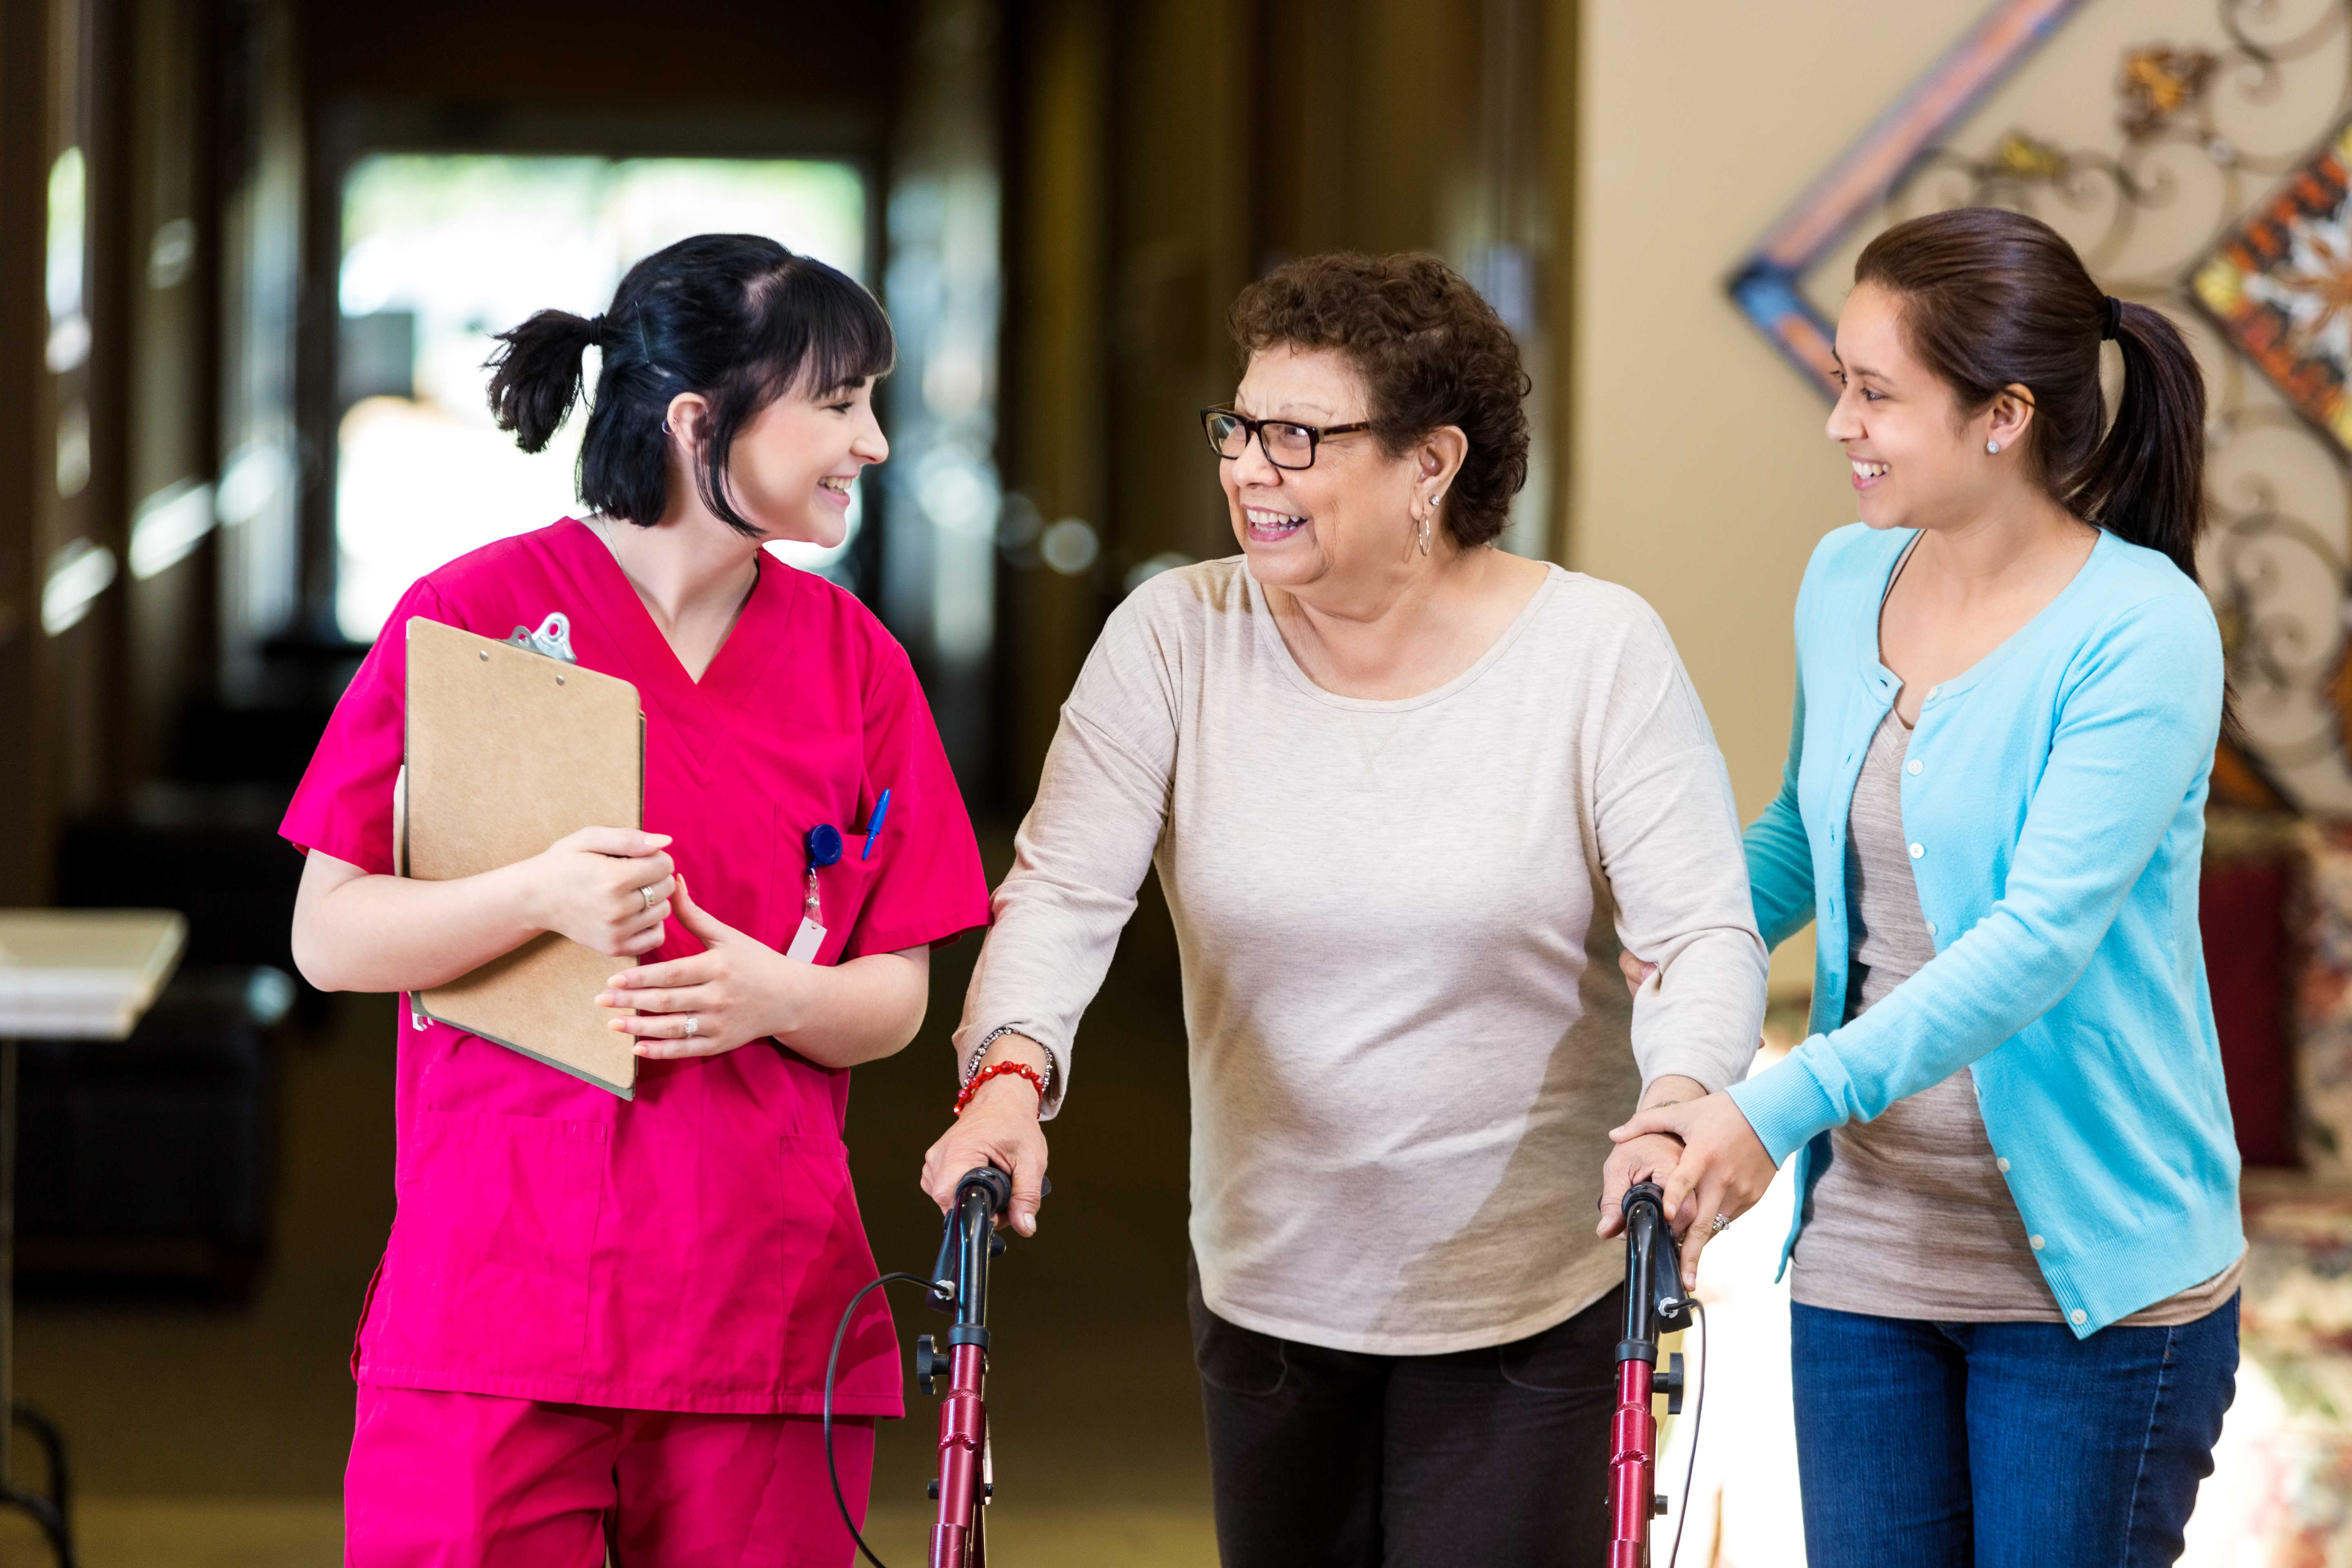 Nurse gives women tour of assisted living facility